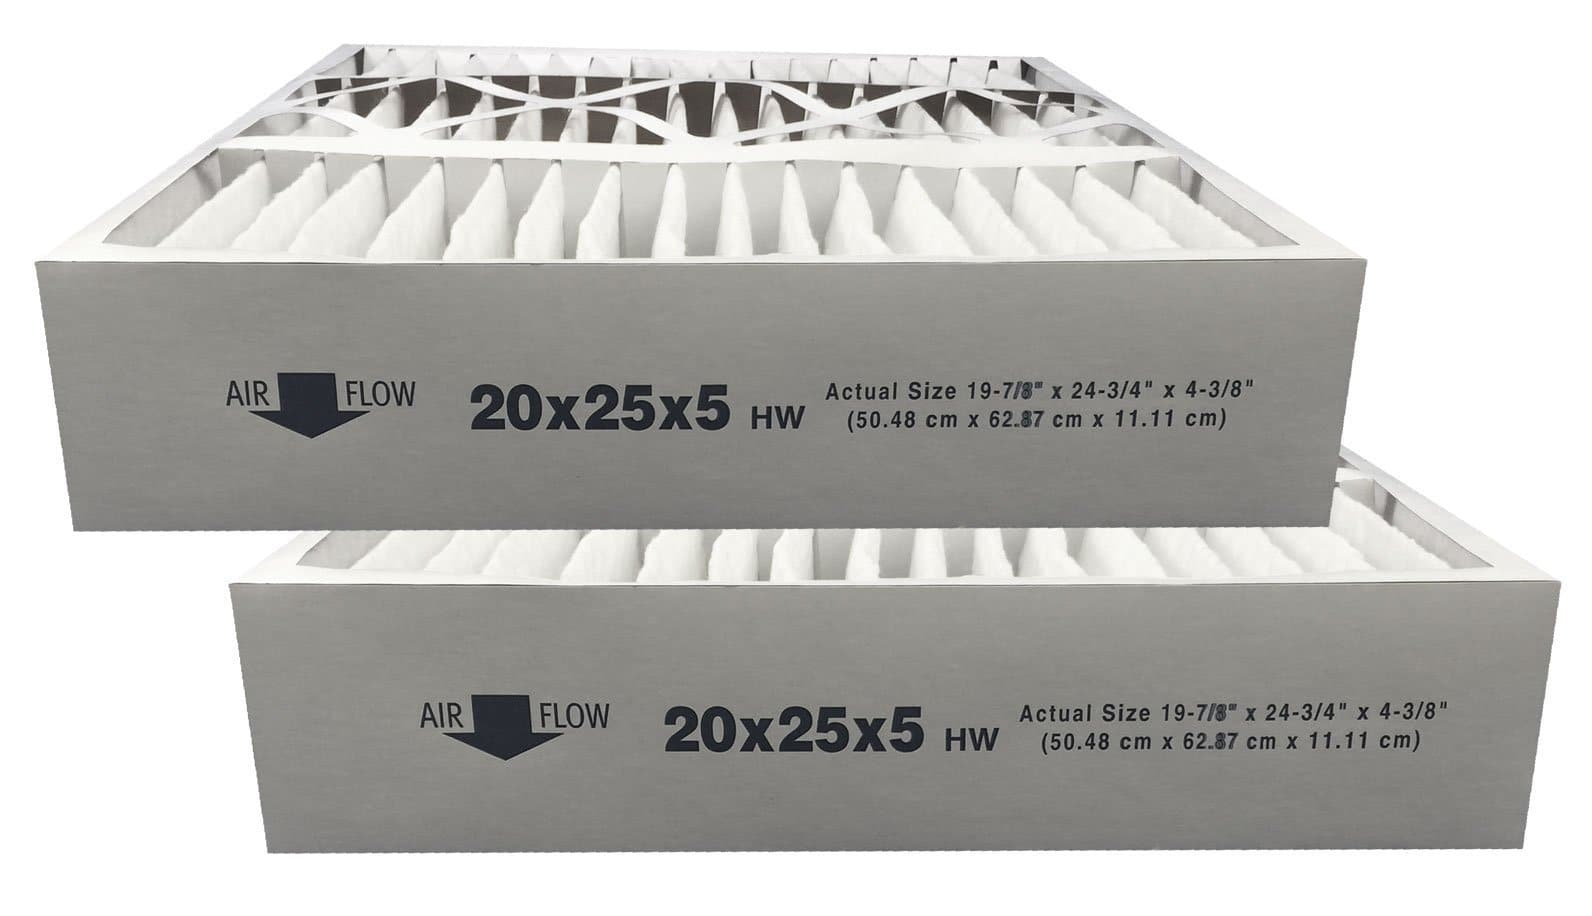 MERV 11 Replacement For Honeywell F100F1038 20x25x5 Air Cleaner Filter 2 Pack